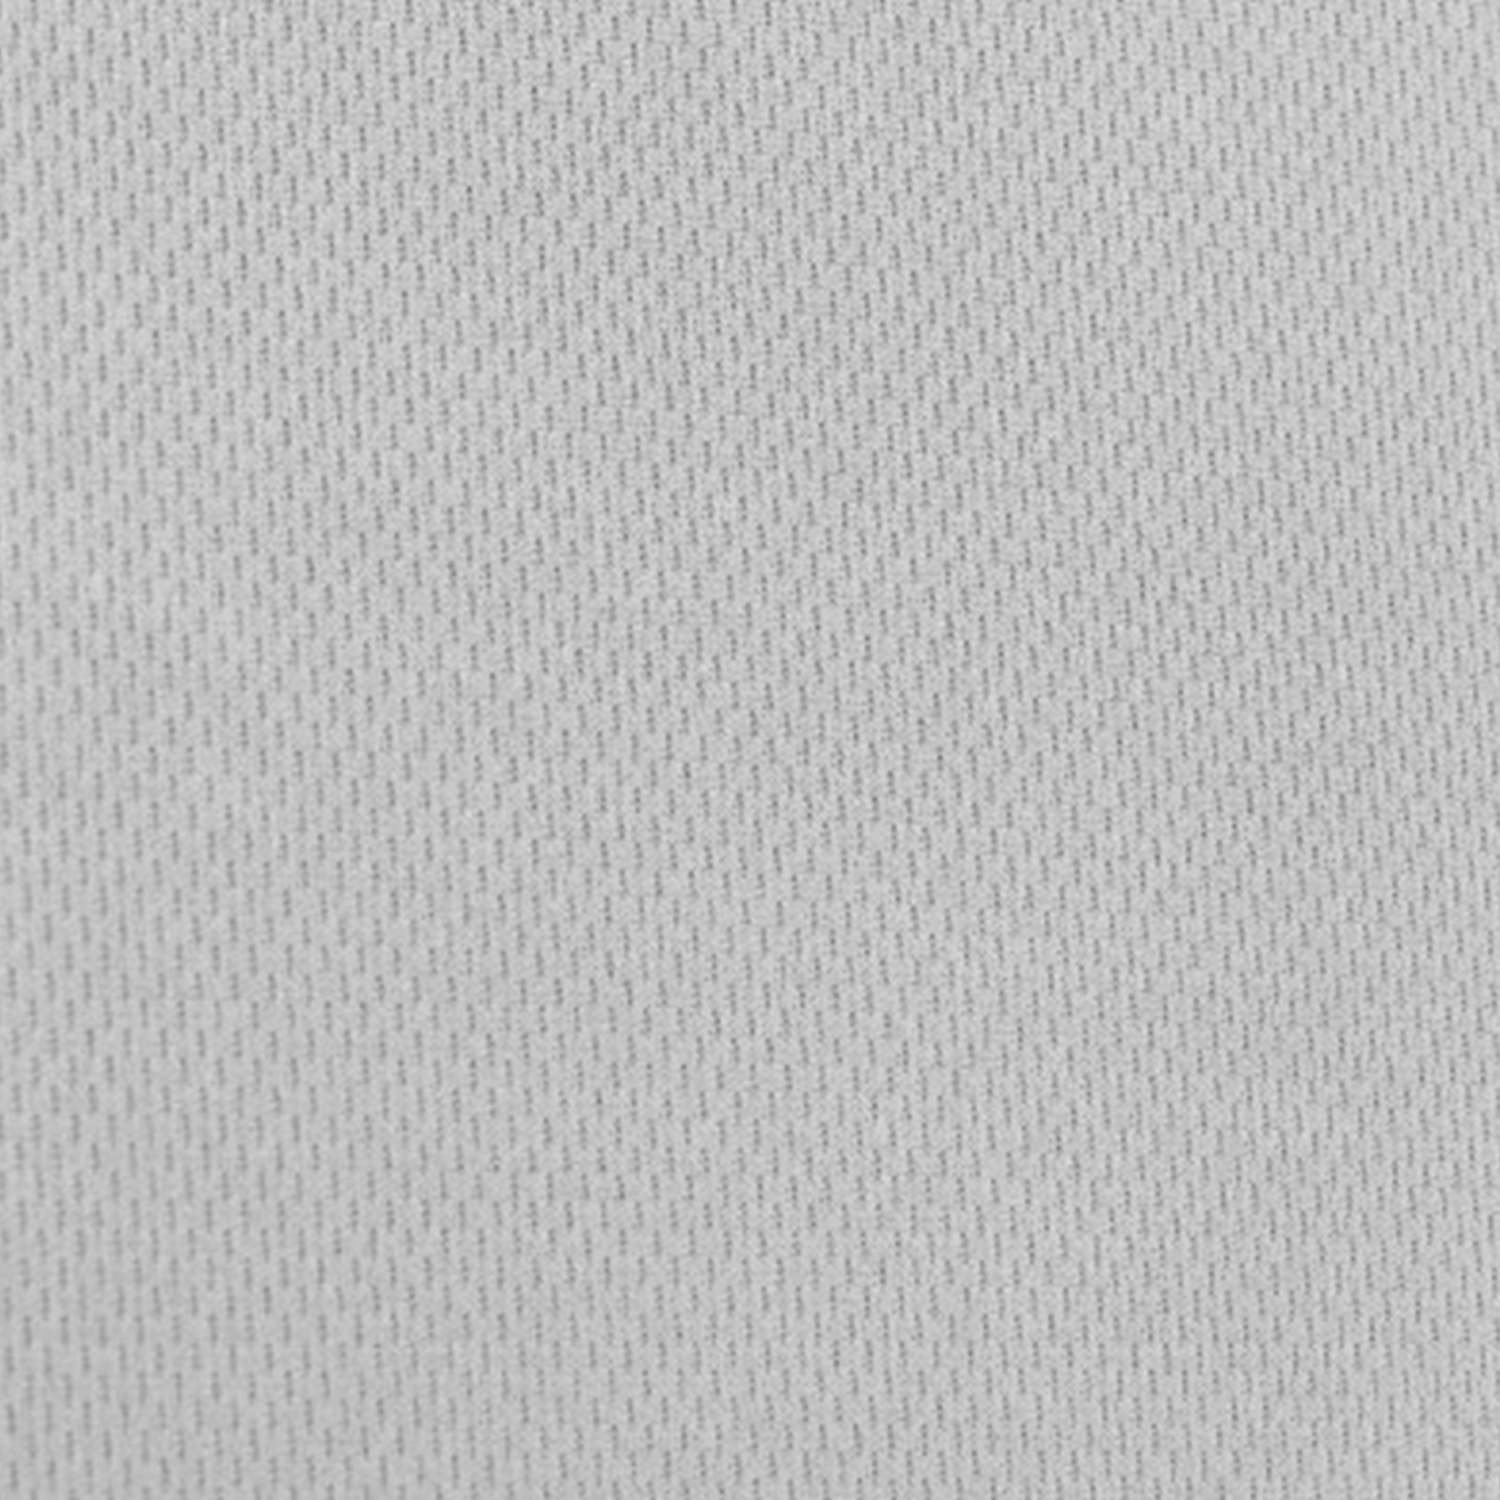 Silver Flat Back Dimple Mesh Fabric